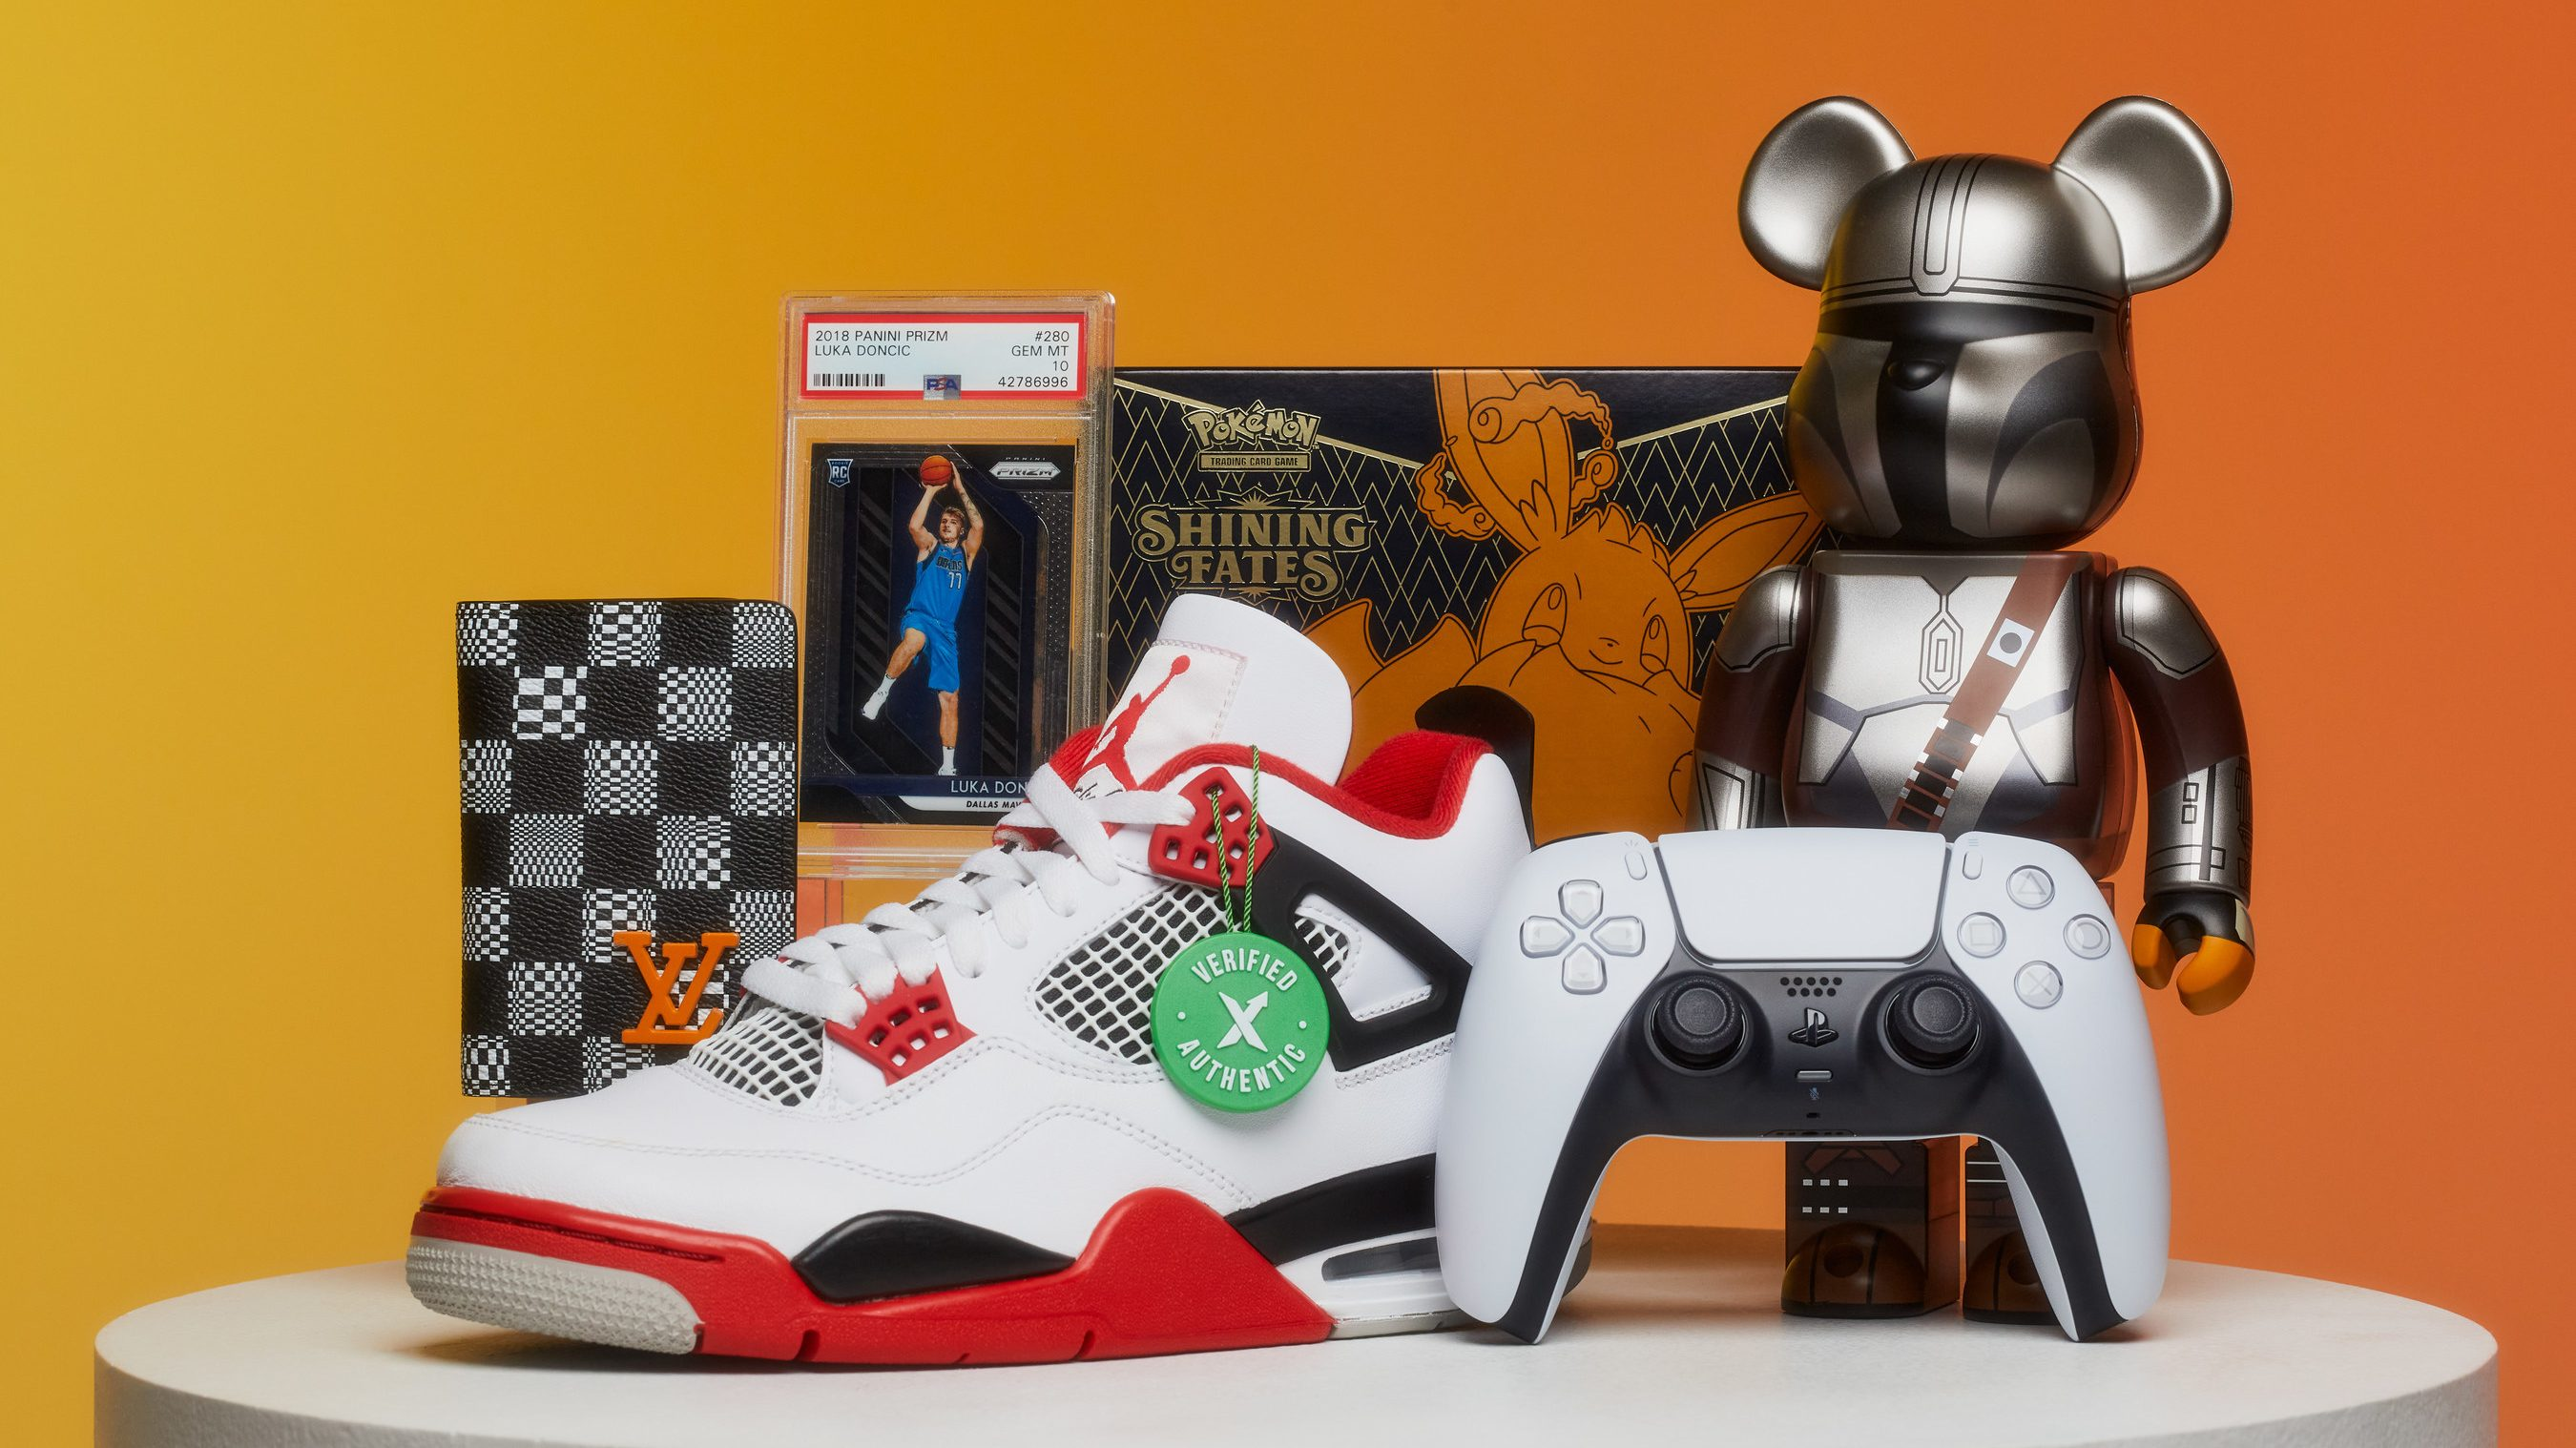 Products representing categories that sell on StockX including a Jordan 4 sneaker, a video game controller, a KAWS collectible toy, and a basketball trading card